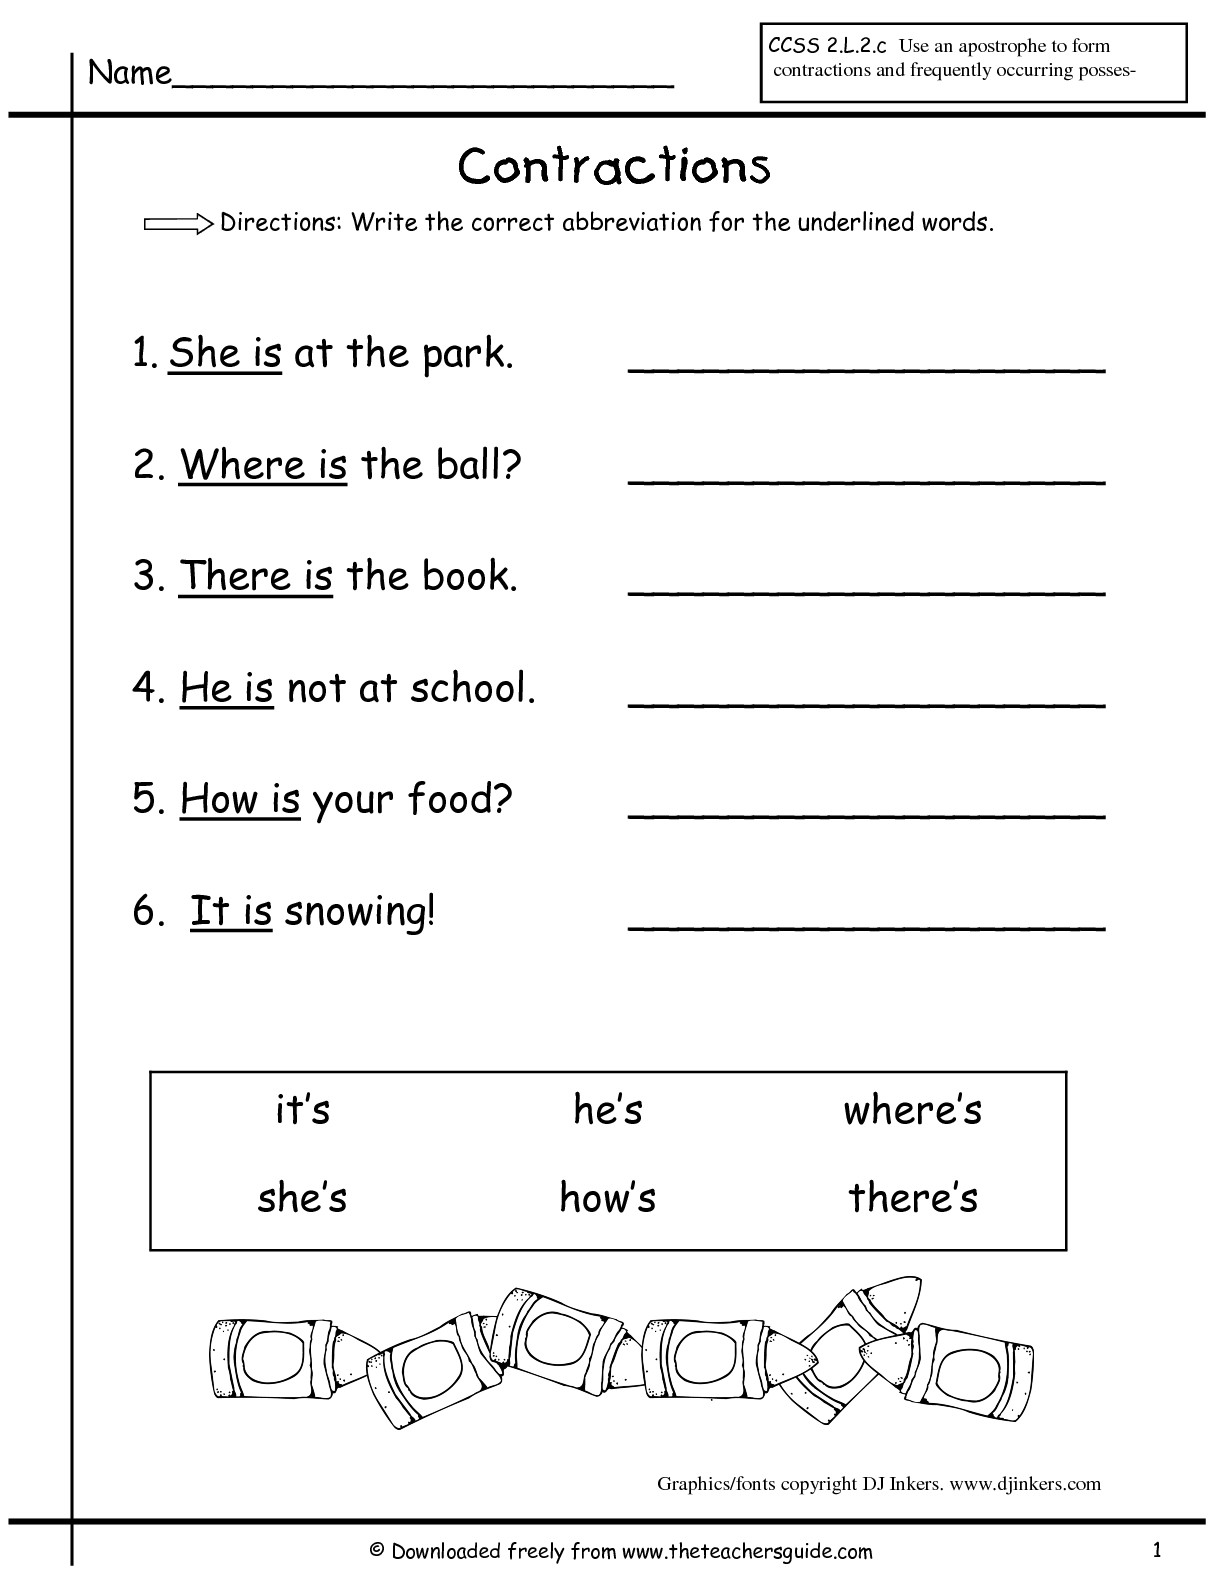 38 Contractions Worksheets For Improving Your Grammar